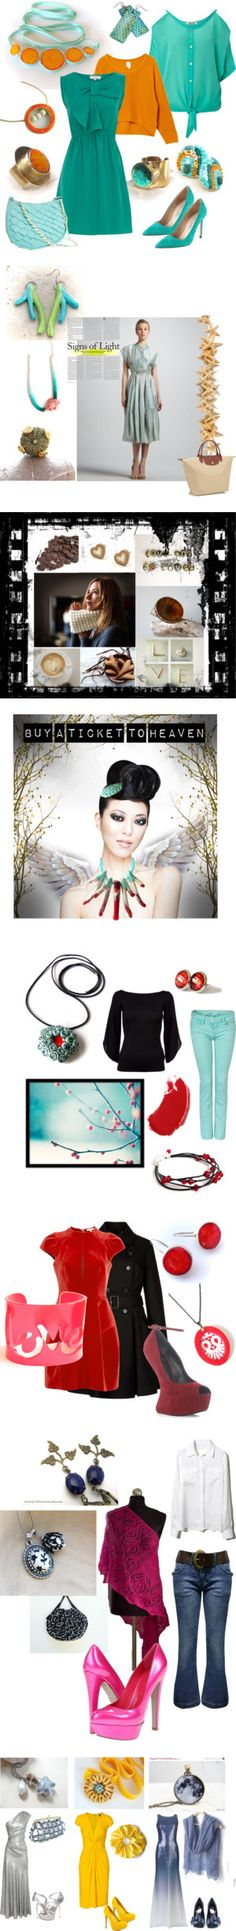 """""""Saturday Style 25 - promotion game - come and play with us! - anyone can join"""" by dorijanki on Polyvore"""